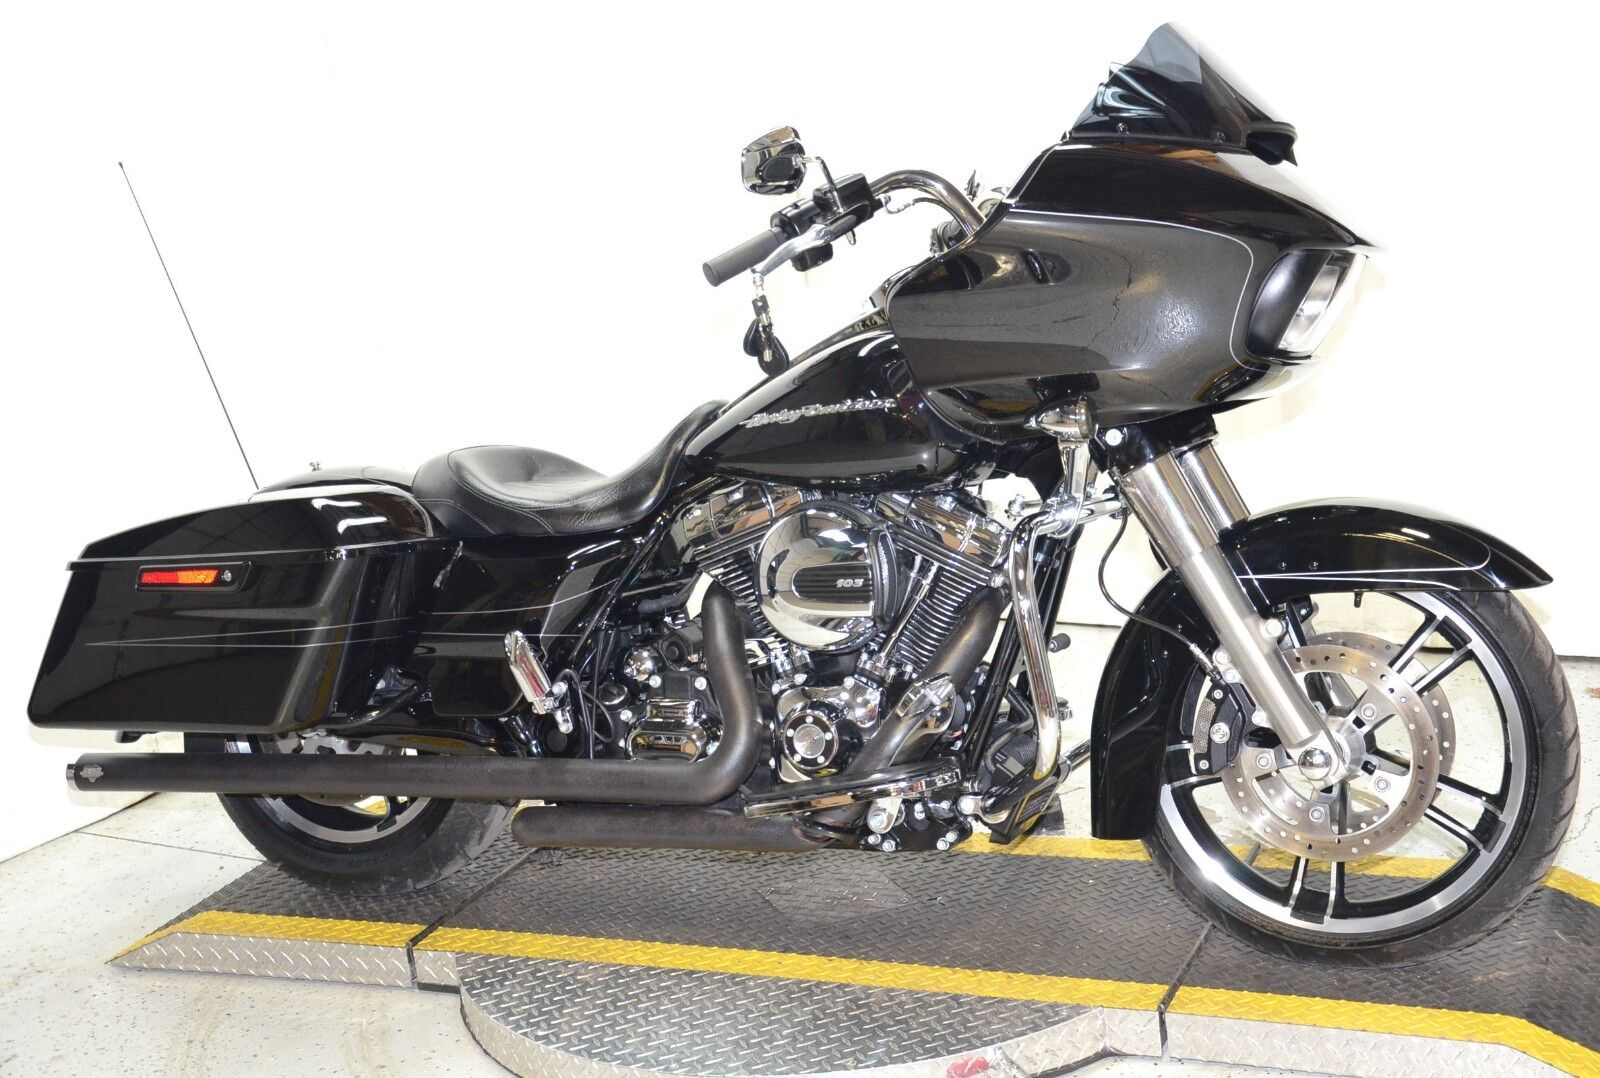 2016 Vivid Black Harley Davidson Road Glide Special FLTRXS Duals Only 2703 Miles